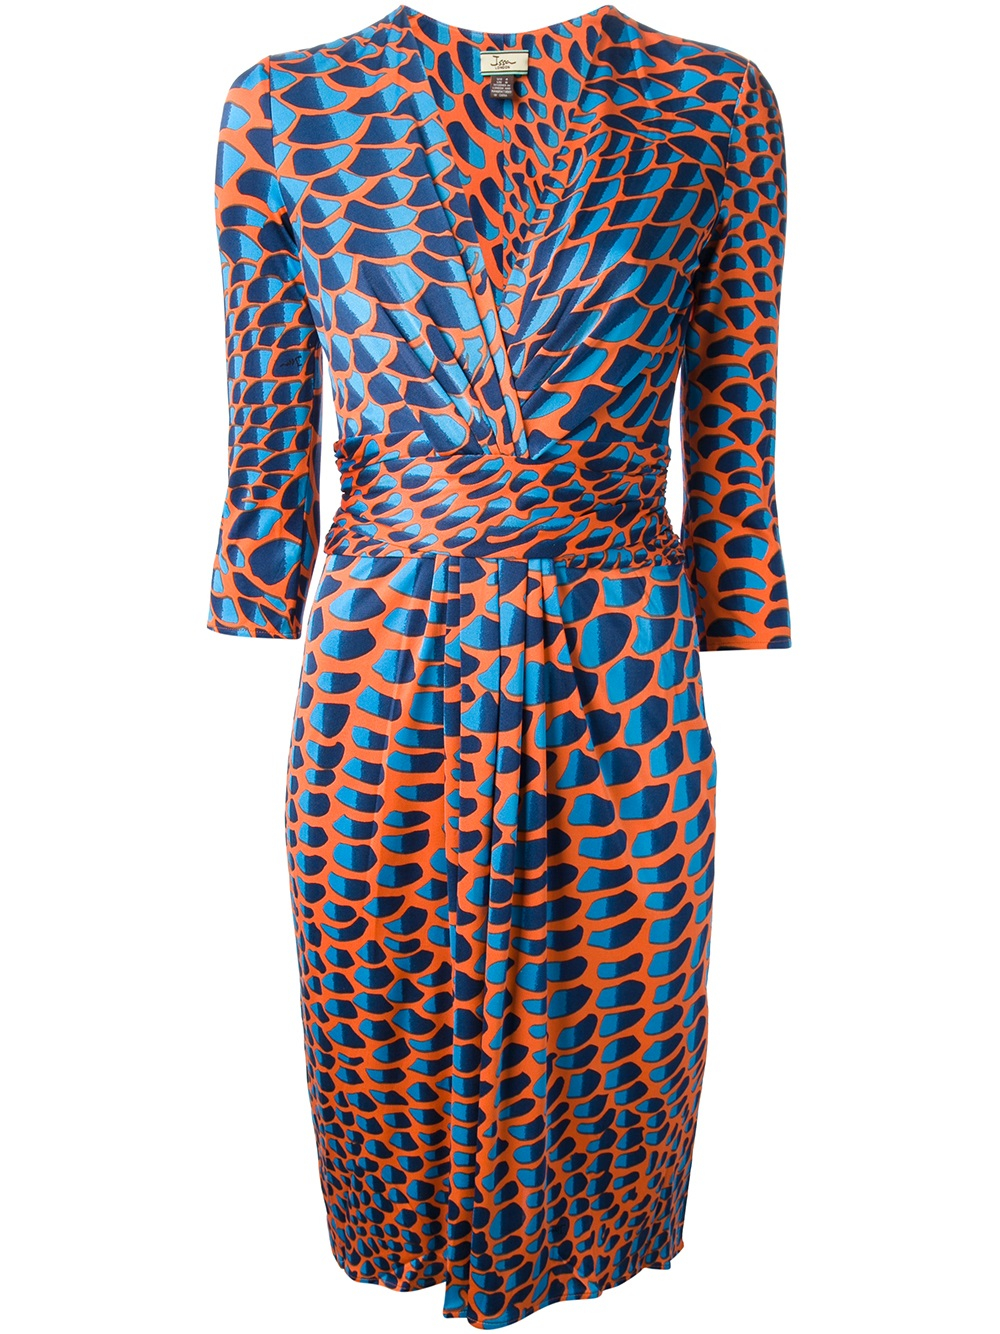 Issa Abstract Print Dress in Blue